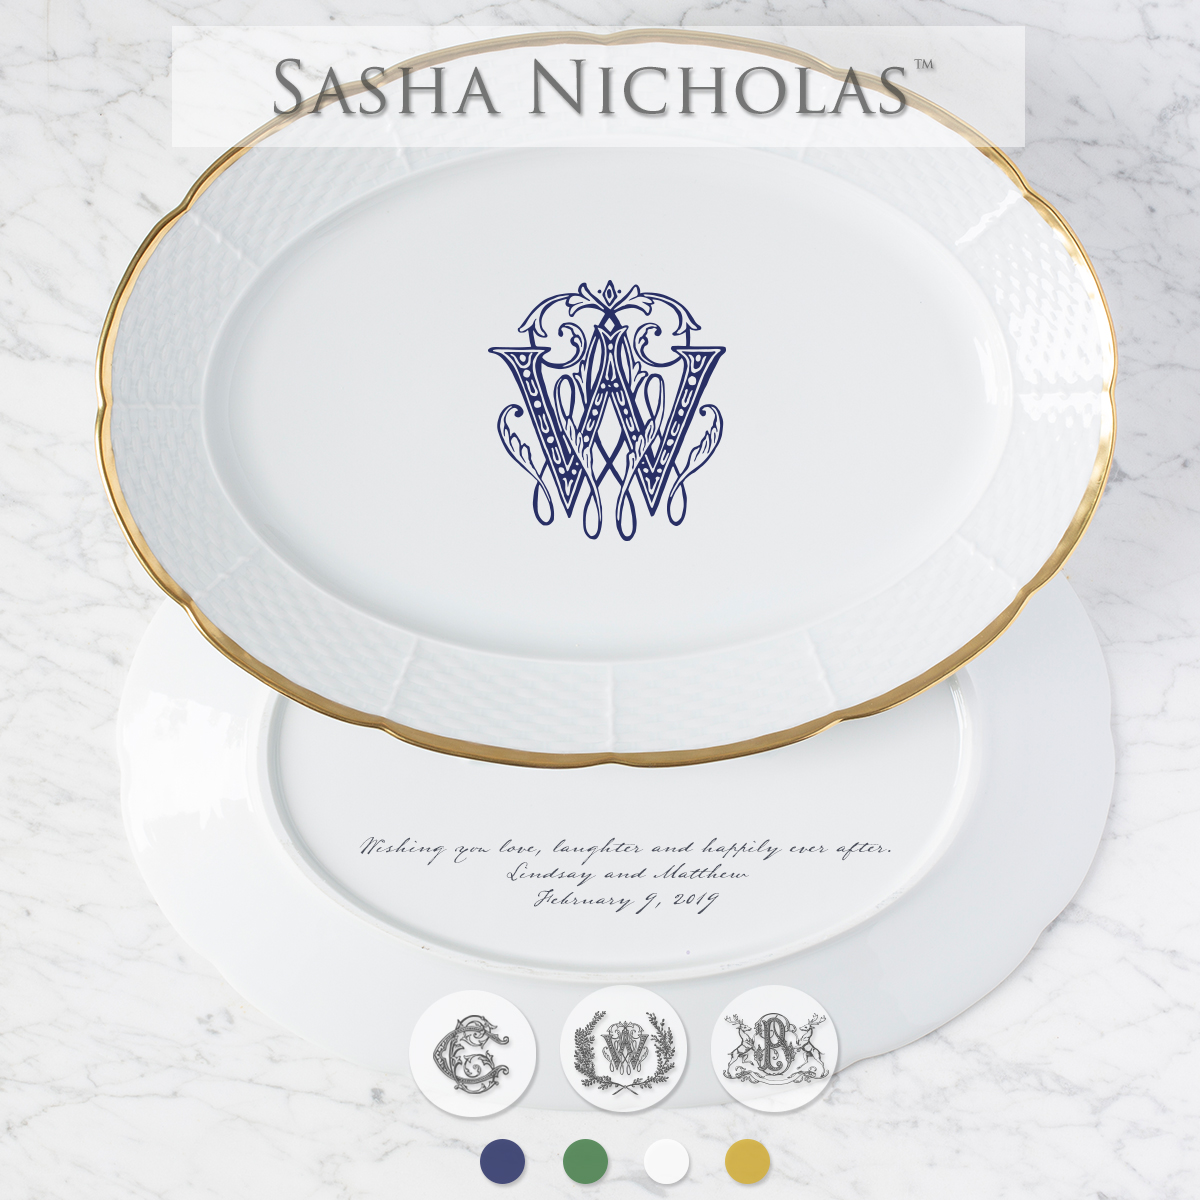 A beautiful addition to your dinnerware collection and to adorn your tablescapes with. It makes the perfect gift for your wedding registry with the included inscription on back. Choose from their signature font styles or use a custom monogram or crest of your choice! The 24K gold rim is quite stunning. | Sasha Nicholas's white porcelain 24K gold oval platter